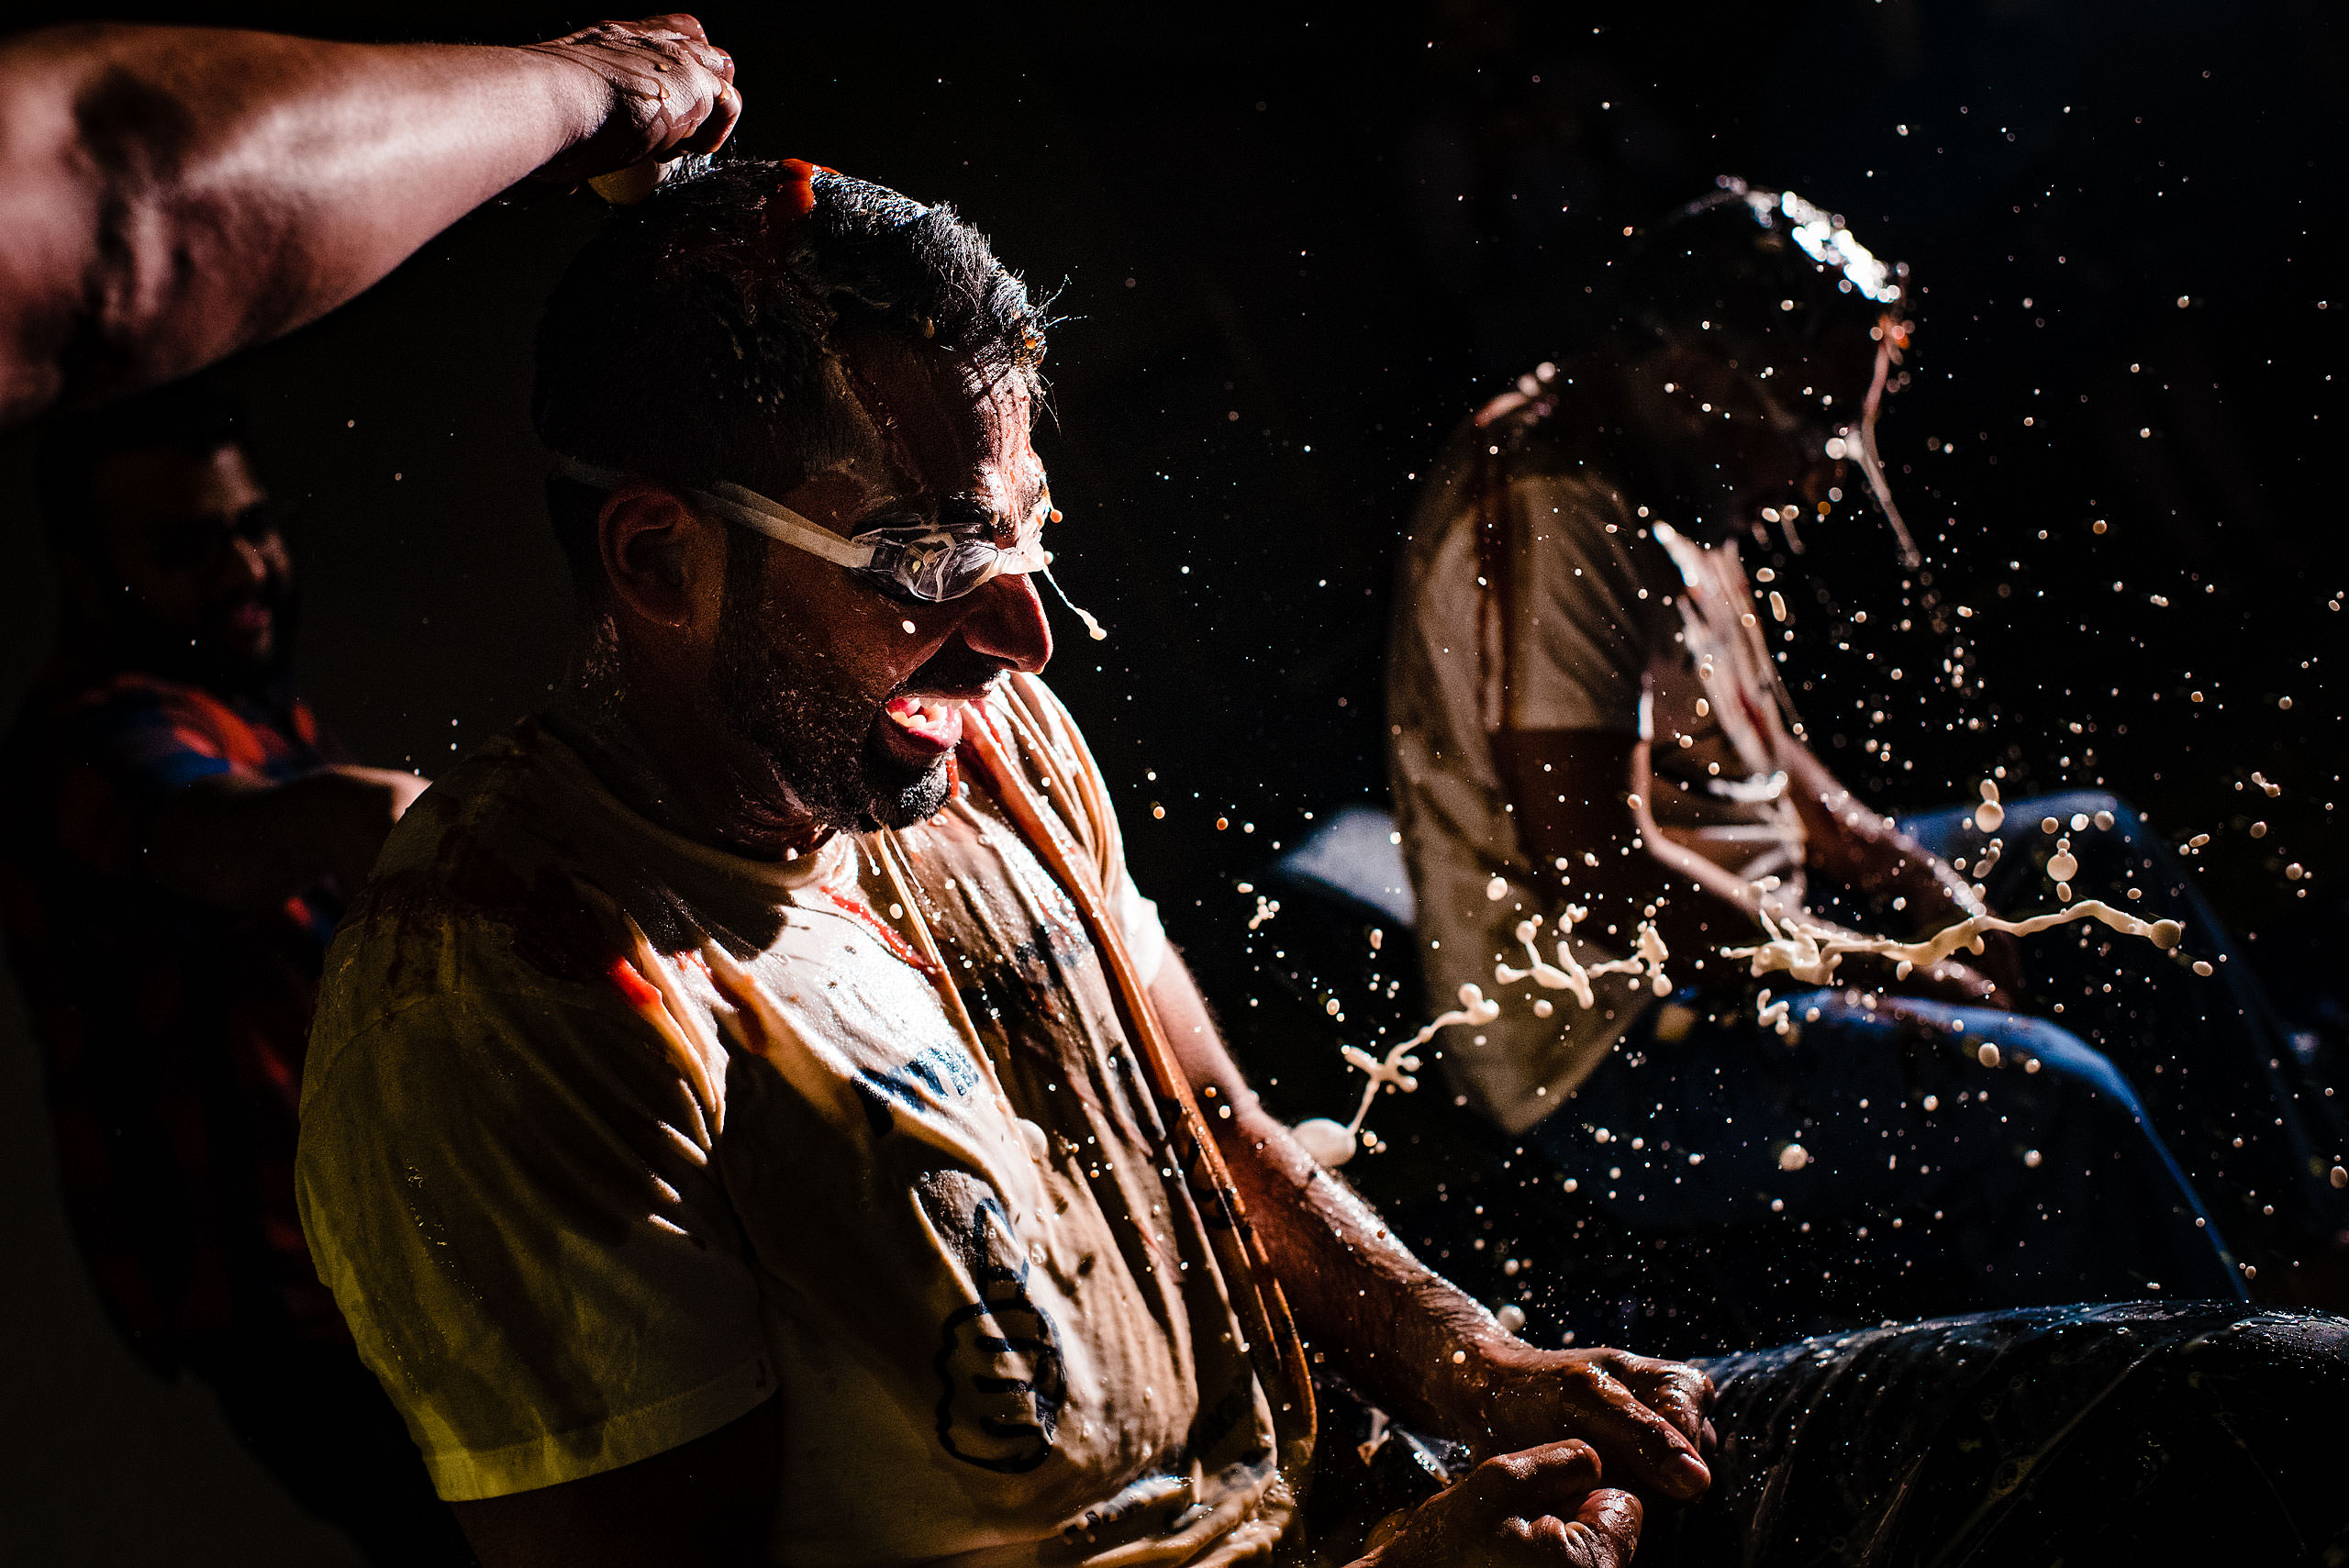 two Indian men getting milk poured on them by Calgary Banff Wedding Photographer Sean LeBlanc